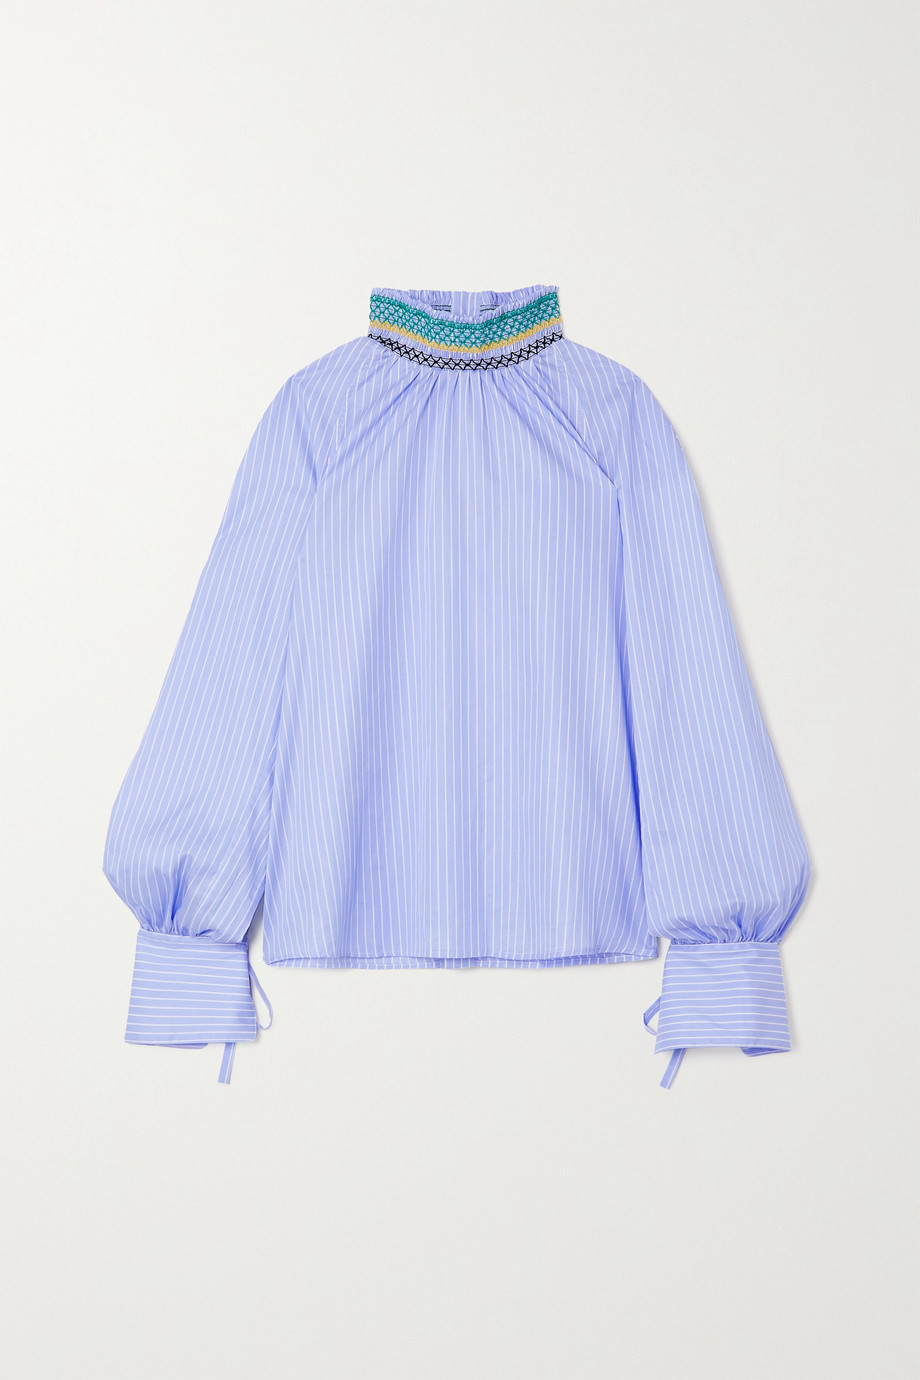 WALES BONNER Palms smocked pinstriped cotton blouse